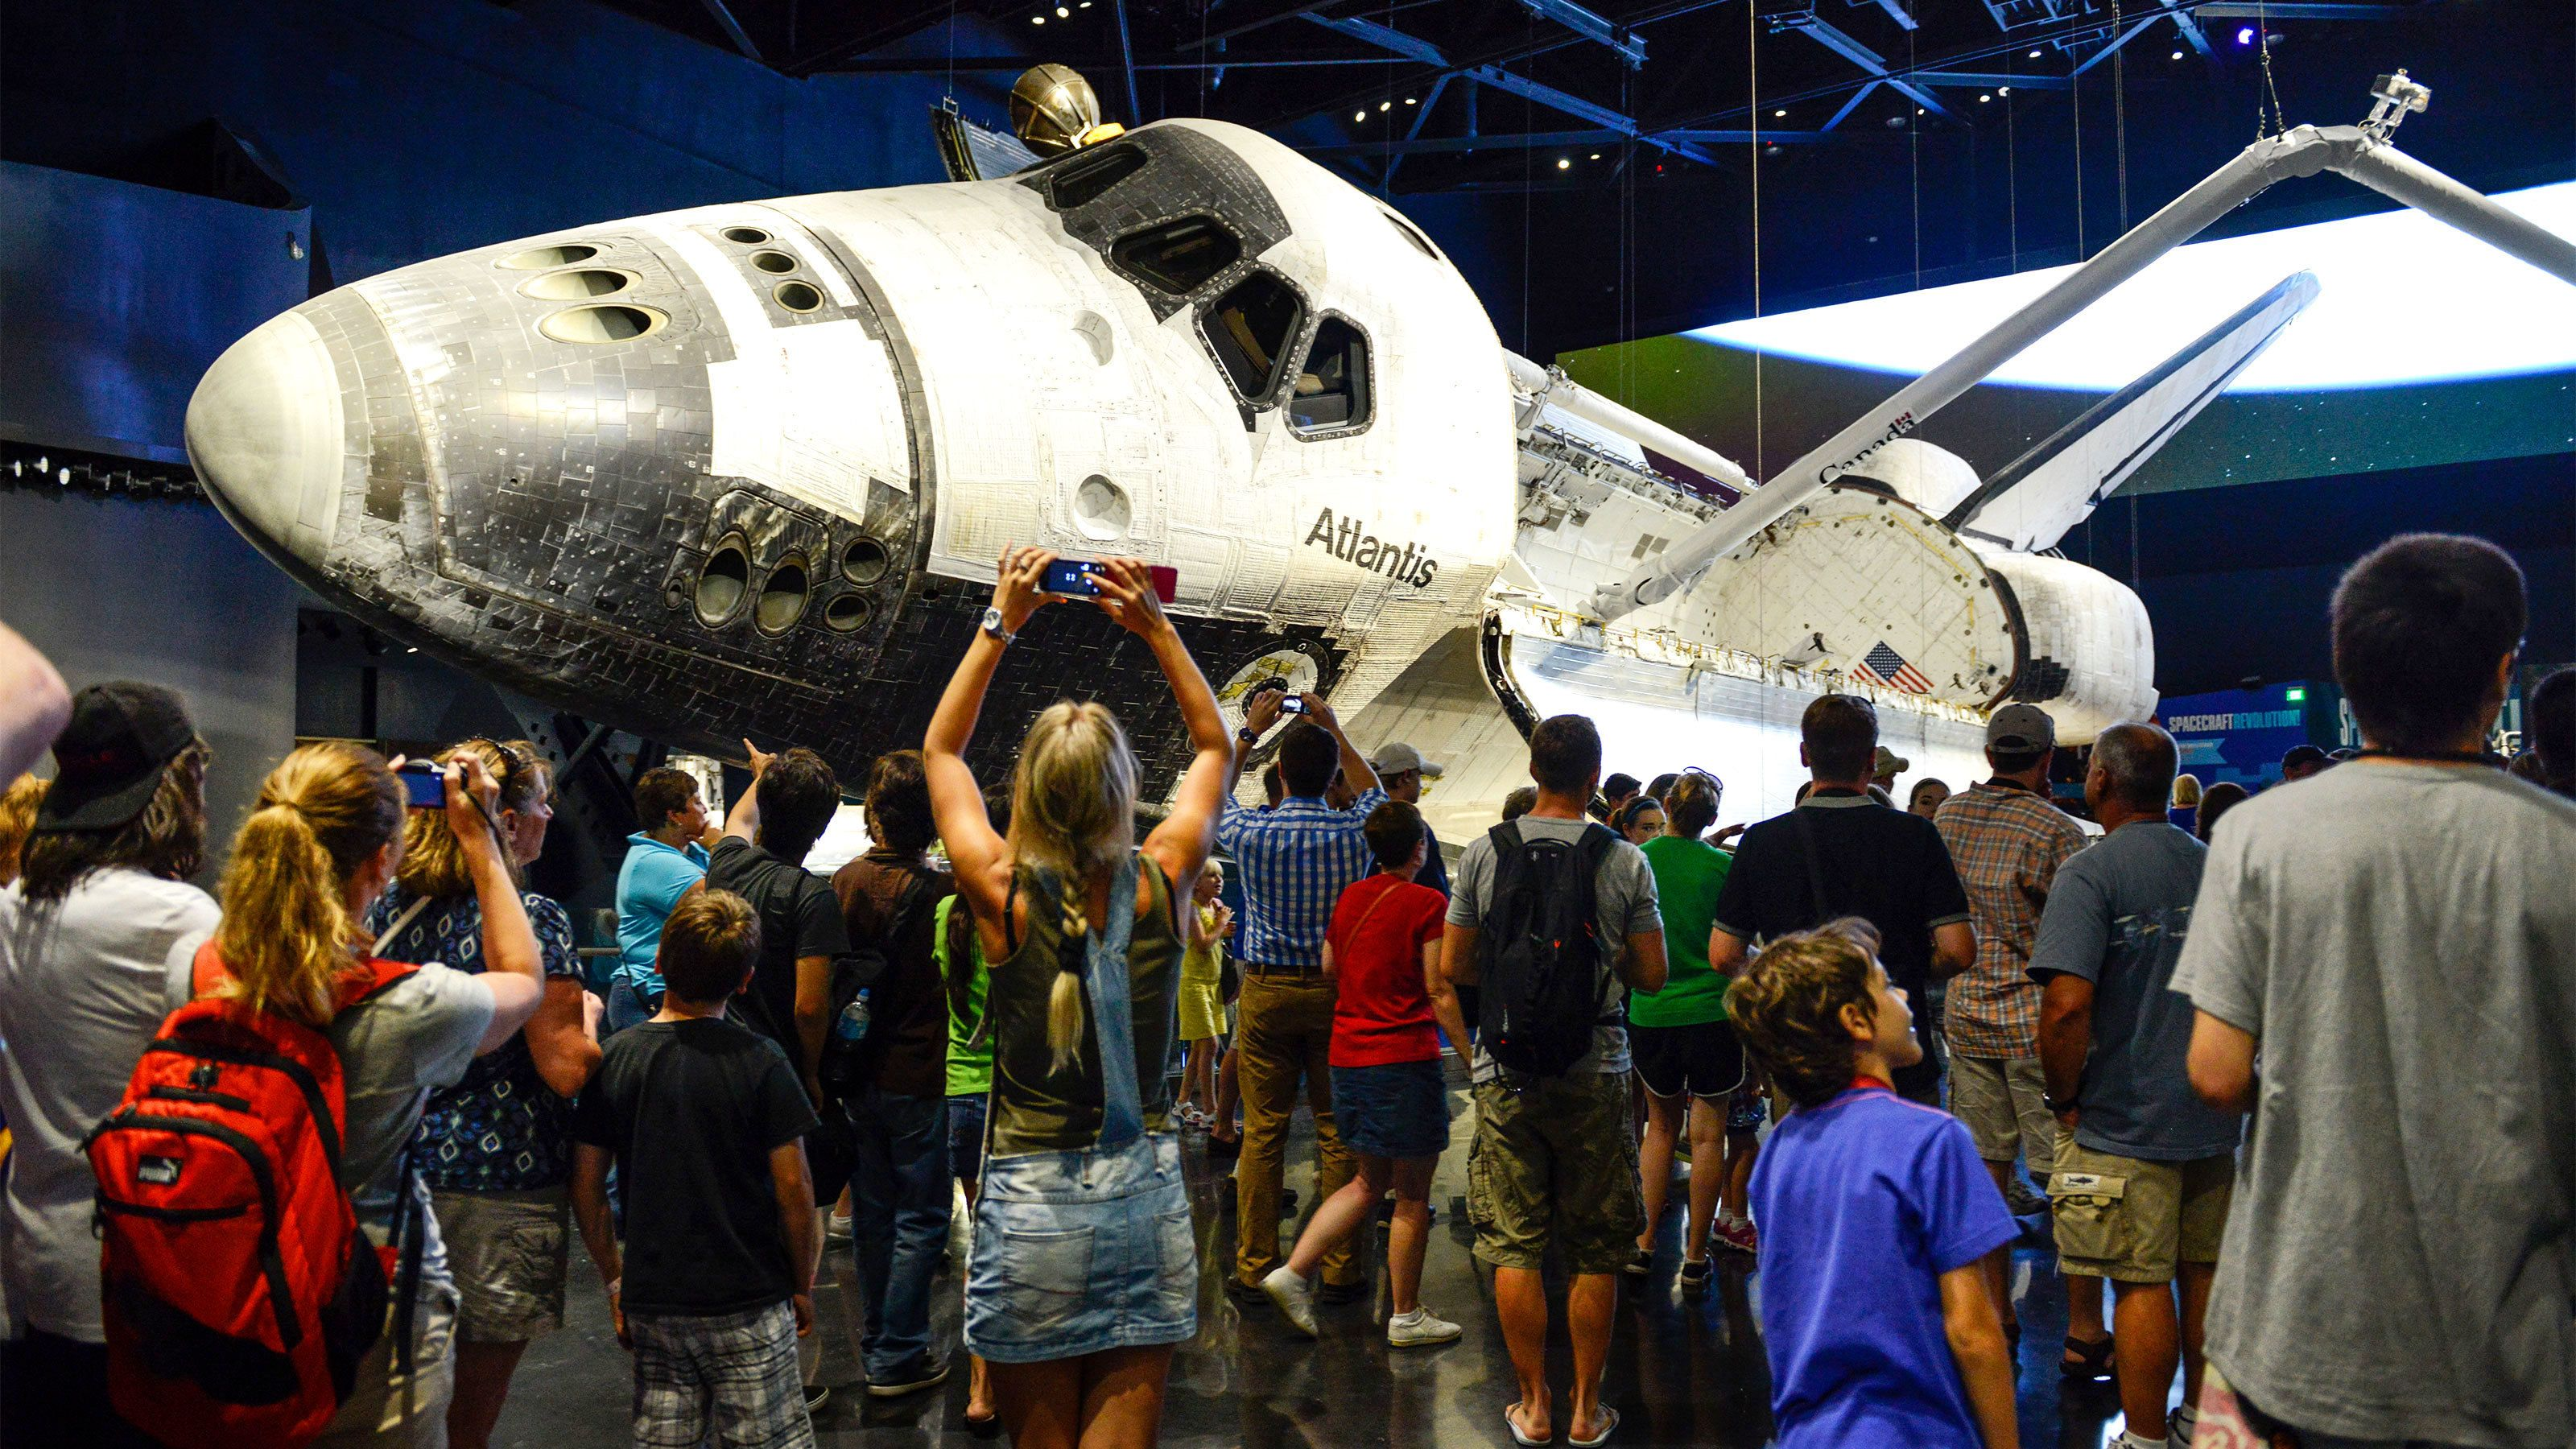 Space Shuttle Atlantis with crowd at the Kennedy Space Center in Orlando.